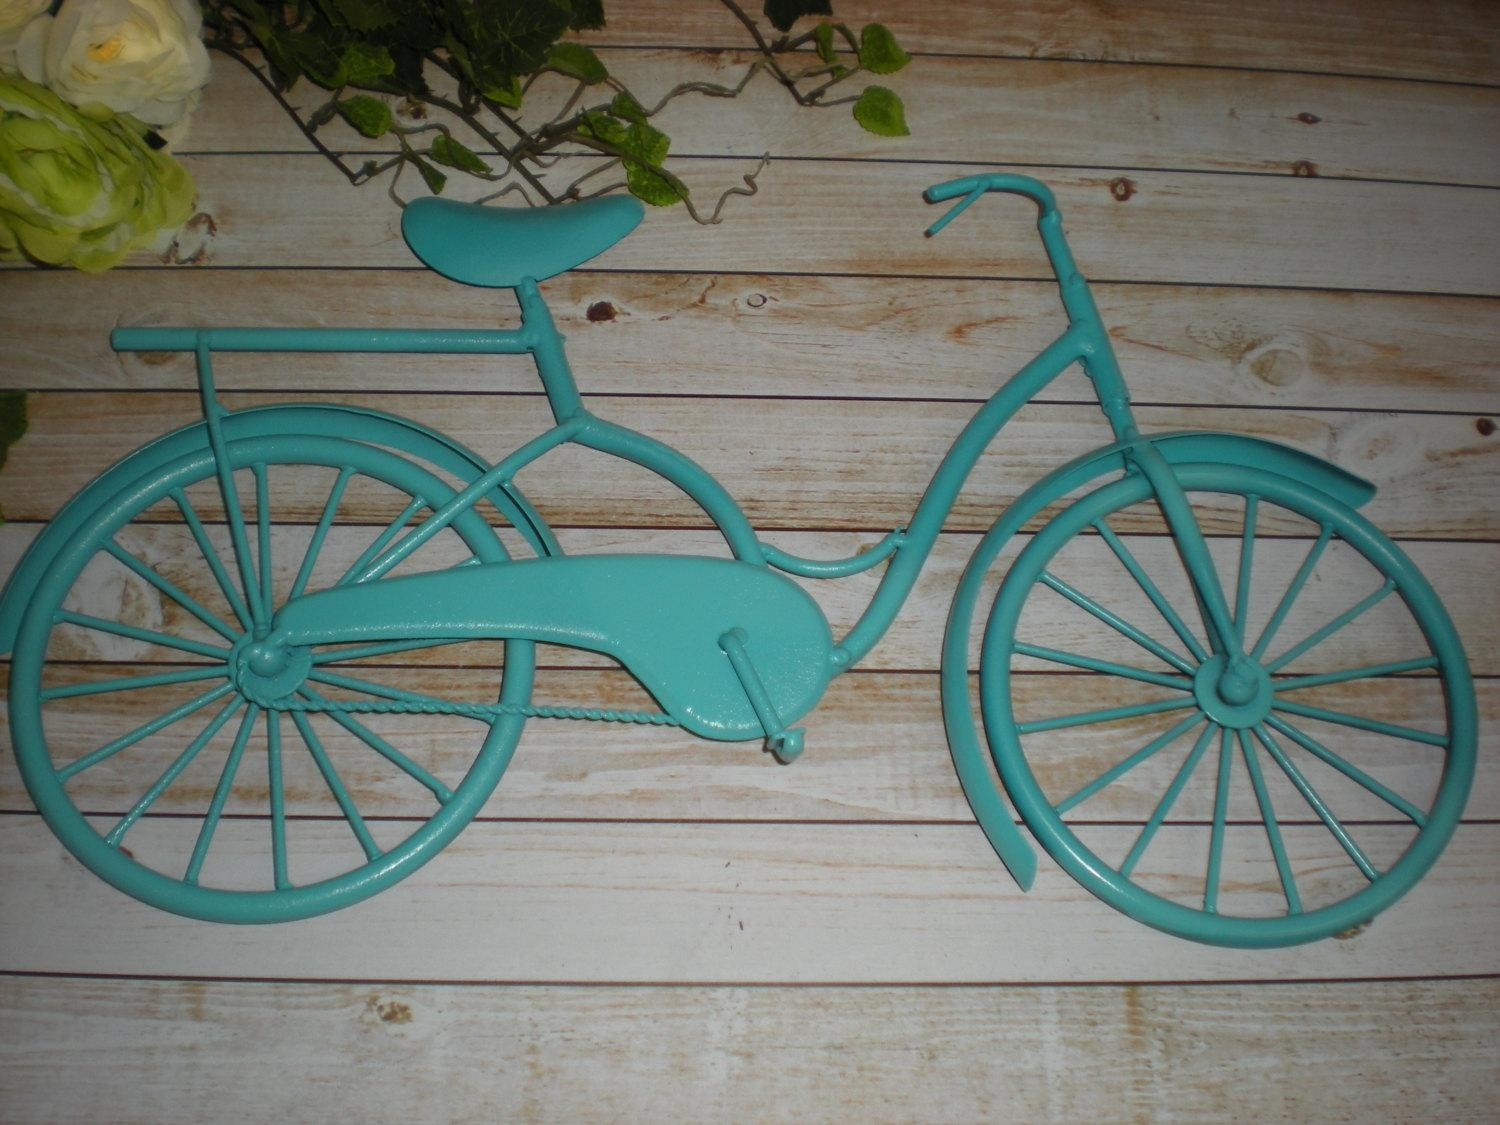 Mesmerizing Wall Decor Bicycle Wall Art Decor Bike Rim Wall Decor In Bicycle Wall Art Decor (View 15 of 20)